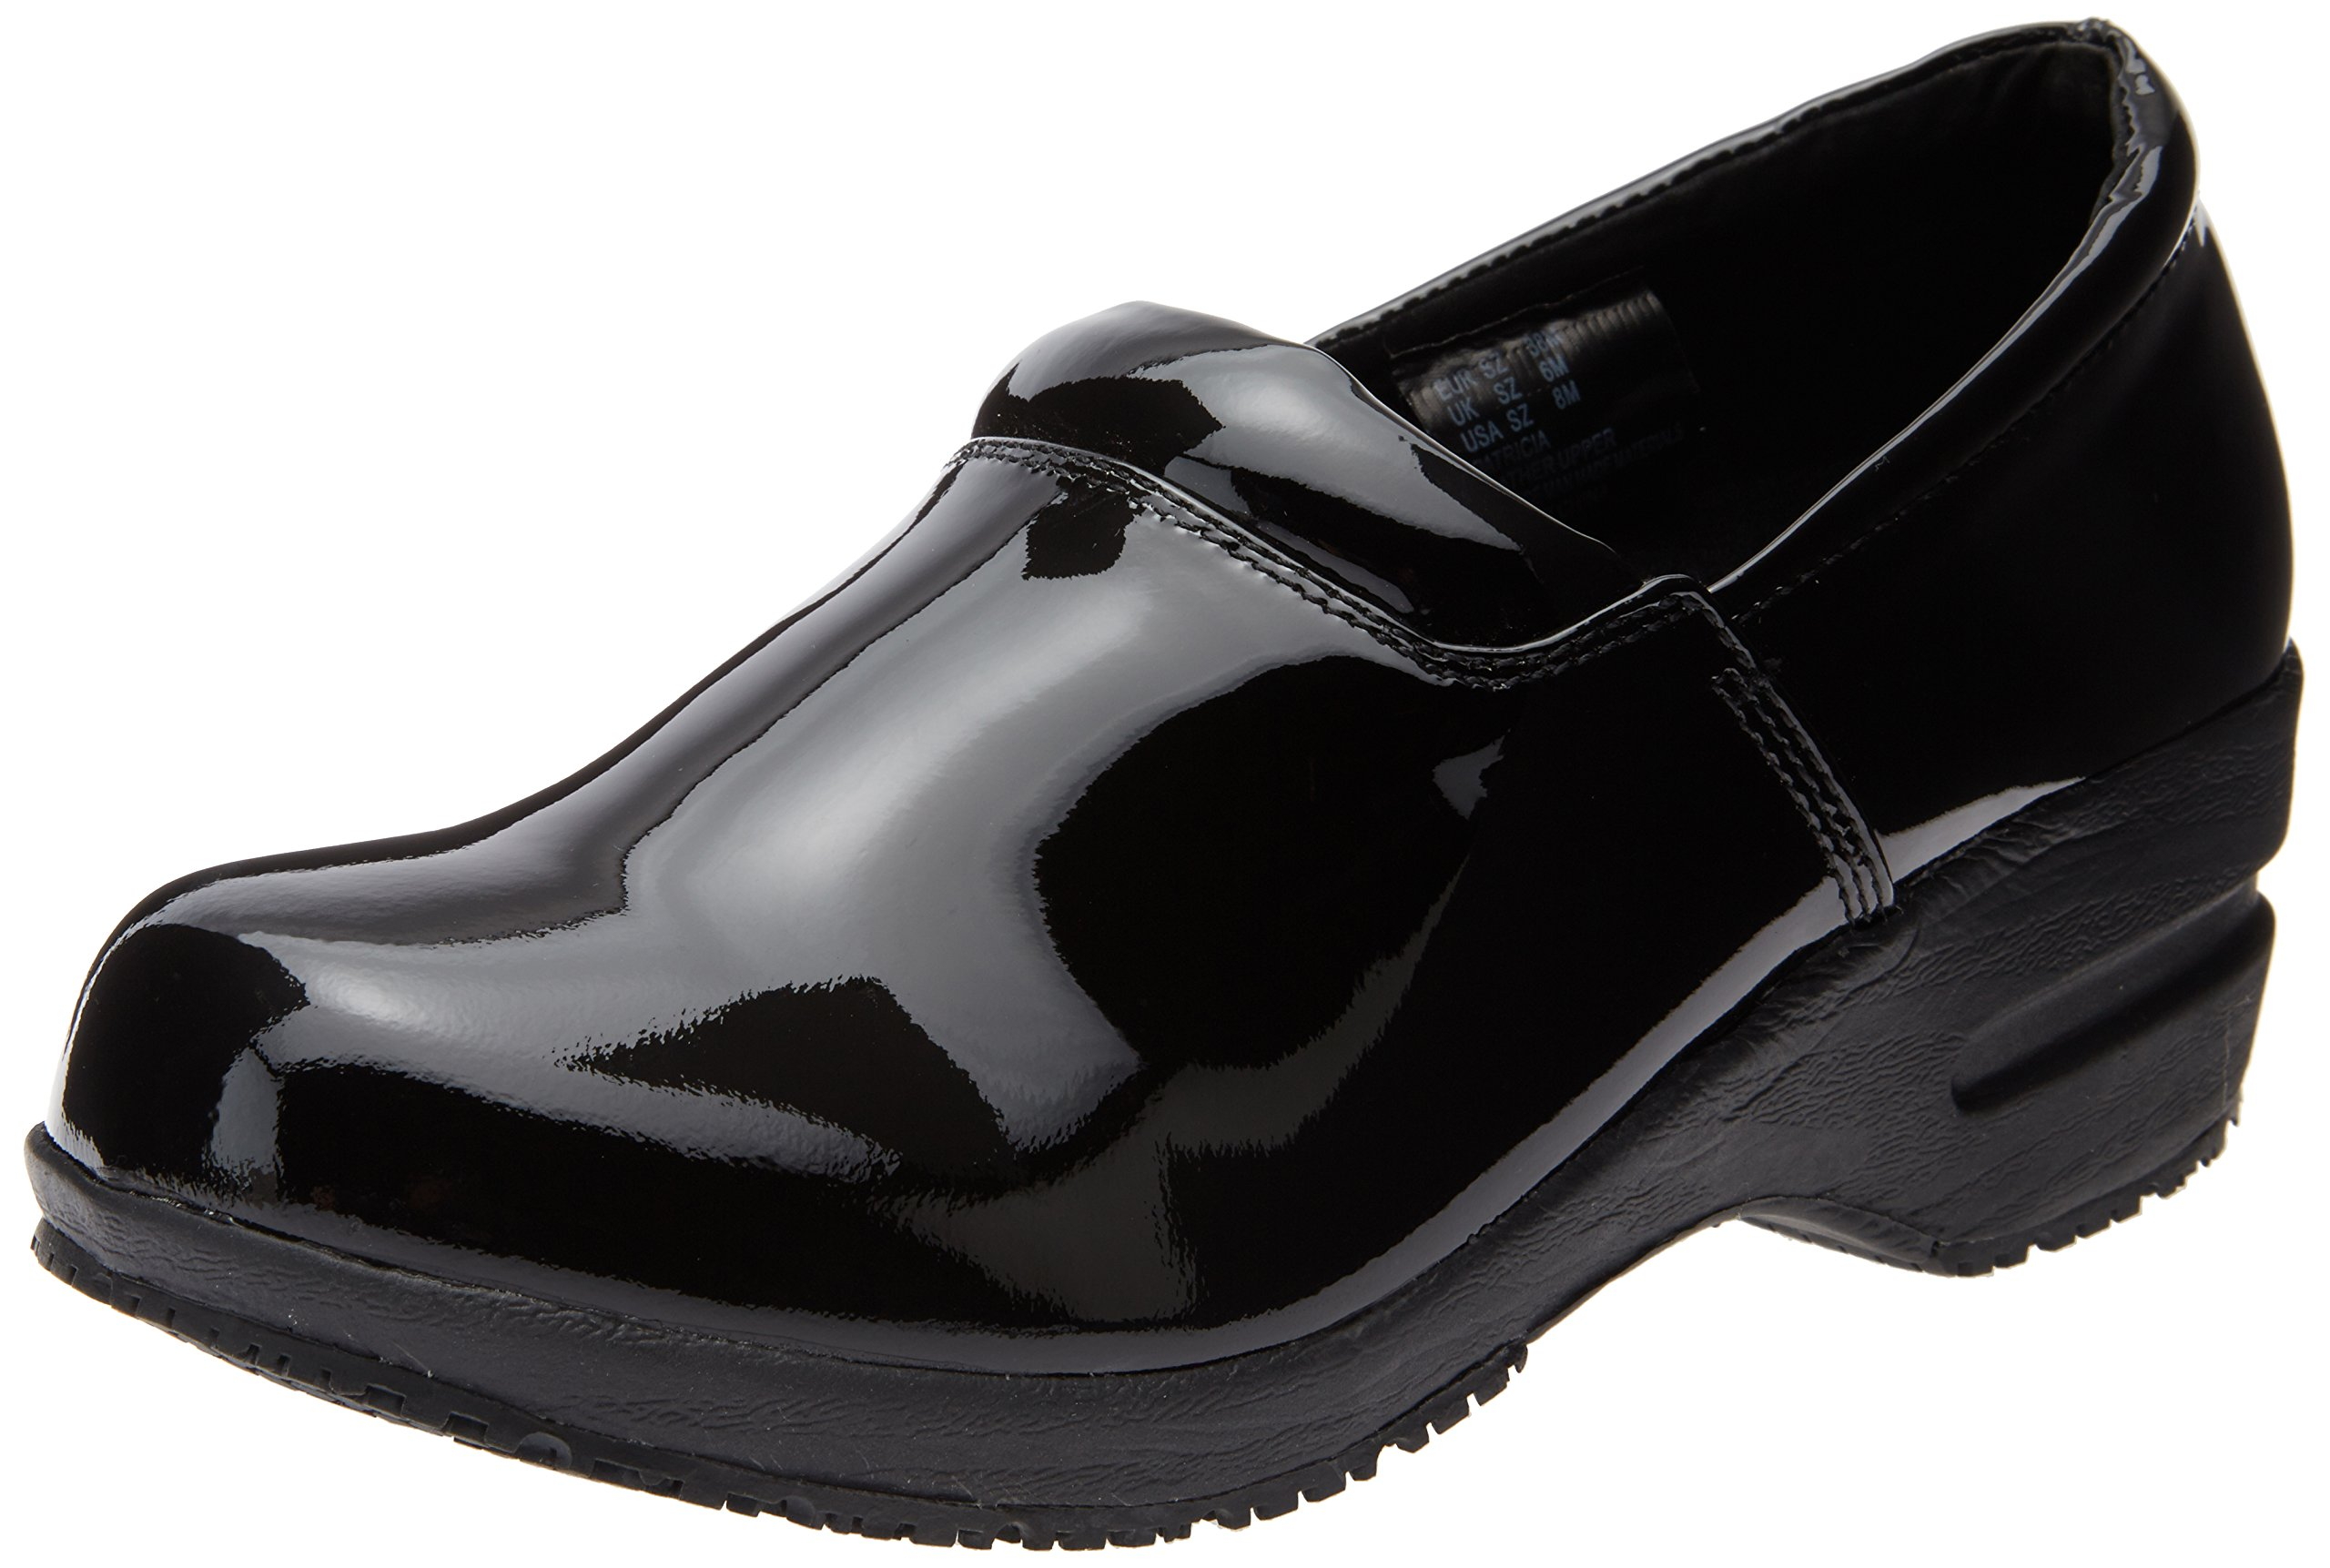 Cherokee Women's Patricia Step In Shoe, Black Patent, 6.5 M US by Cherokee (Image #1)